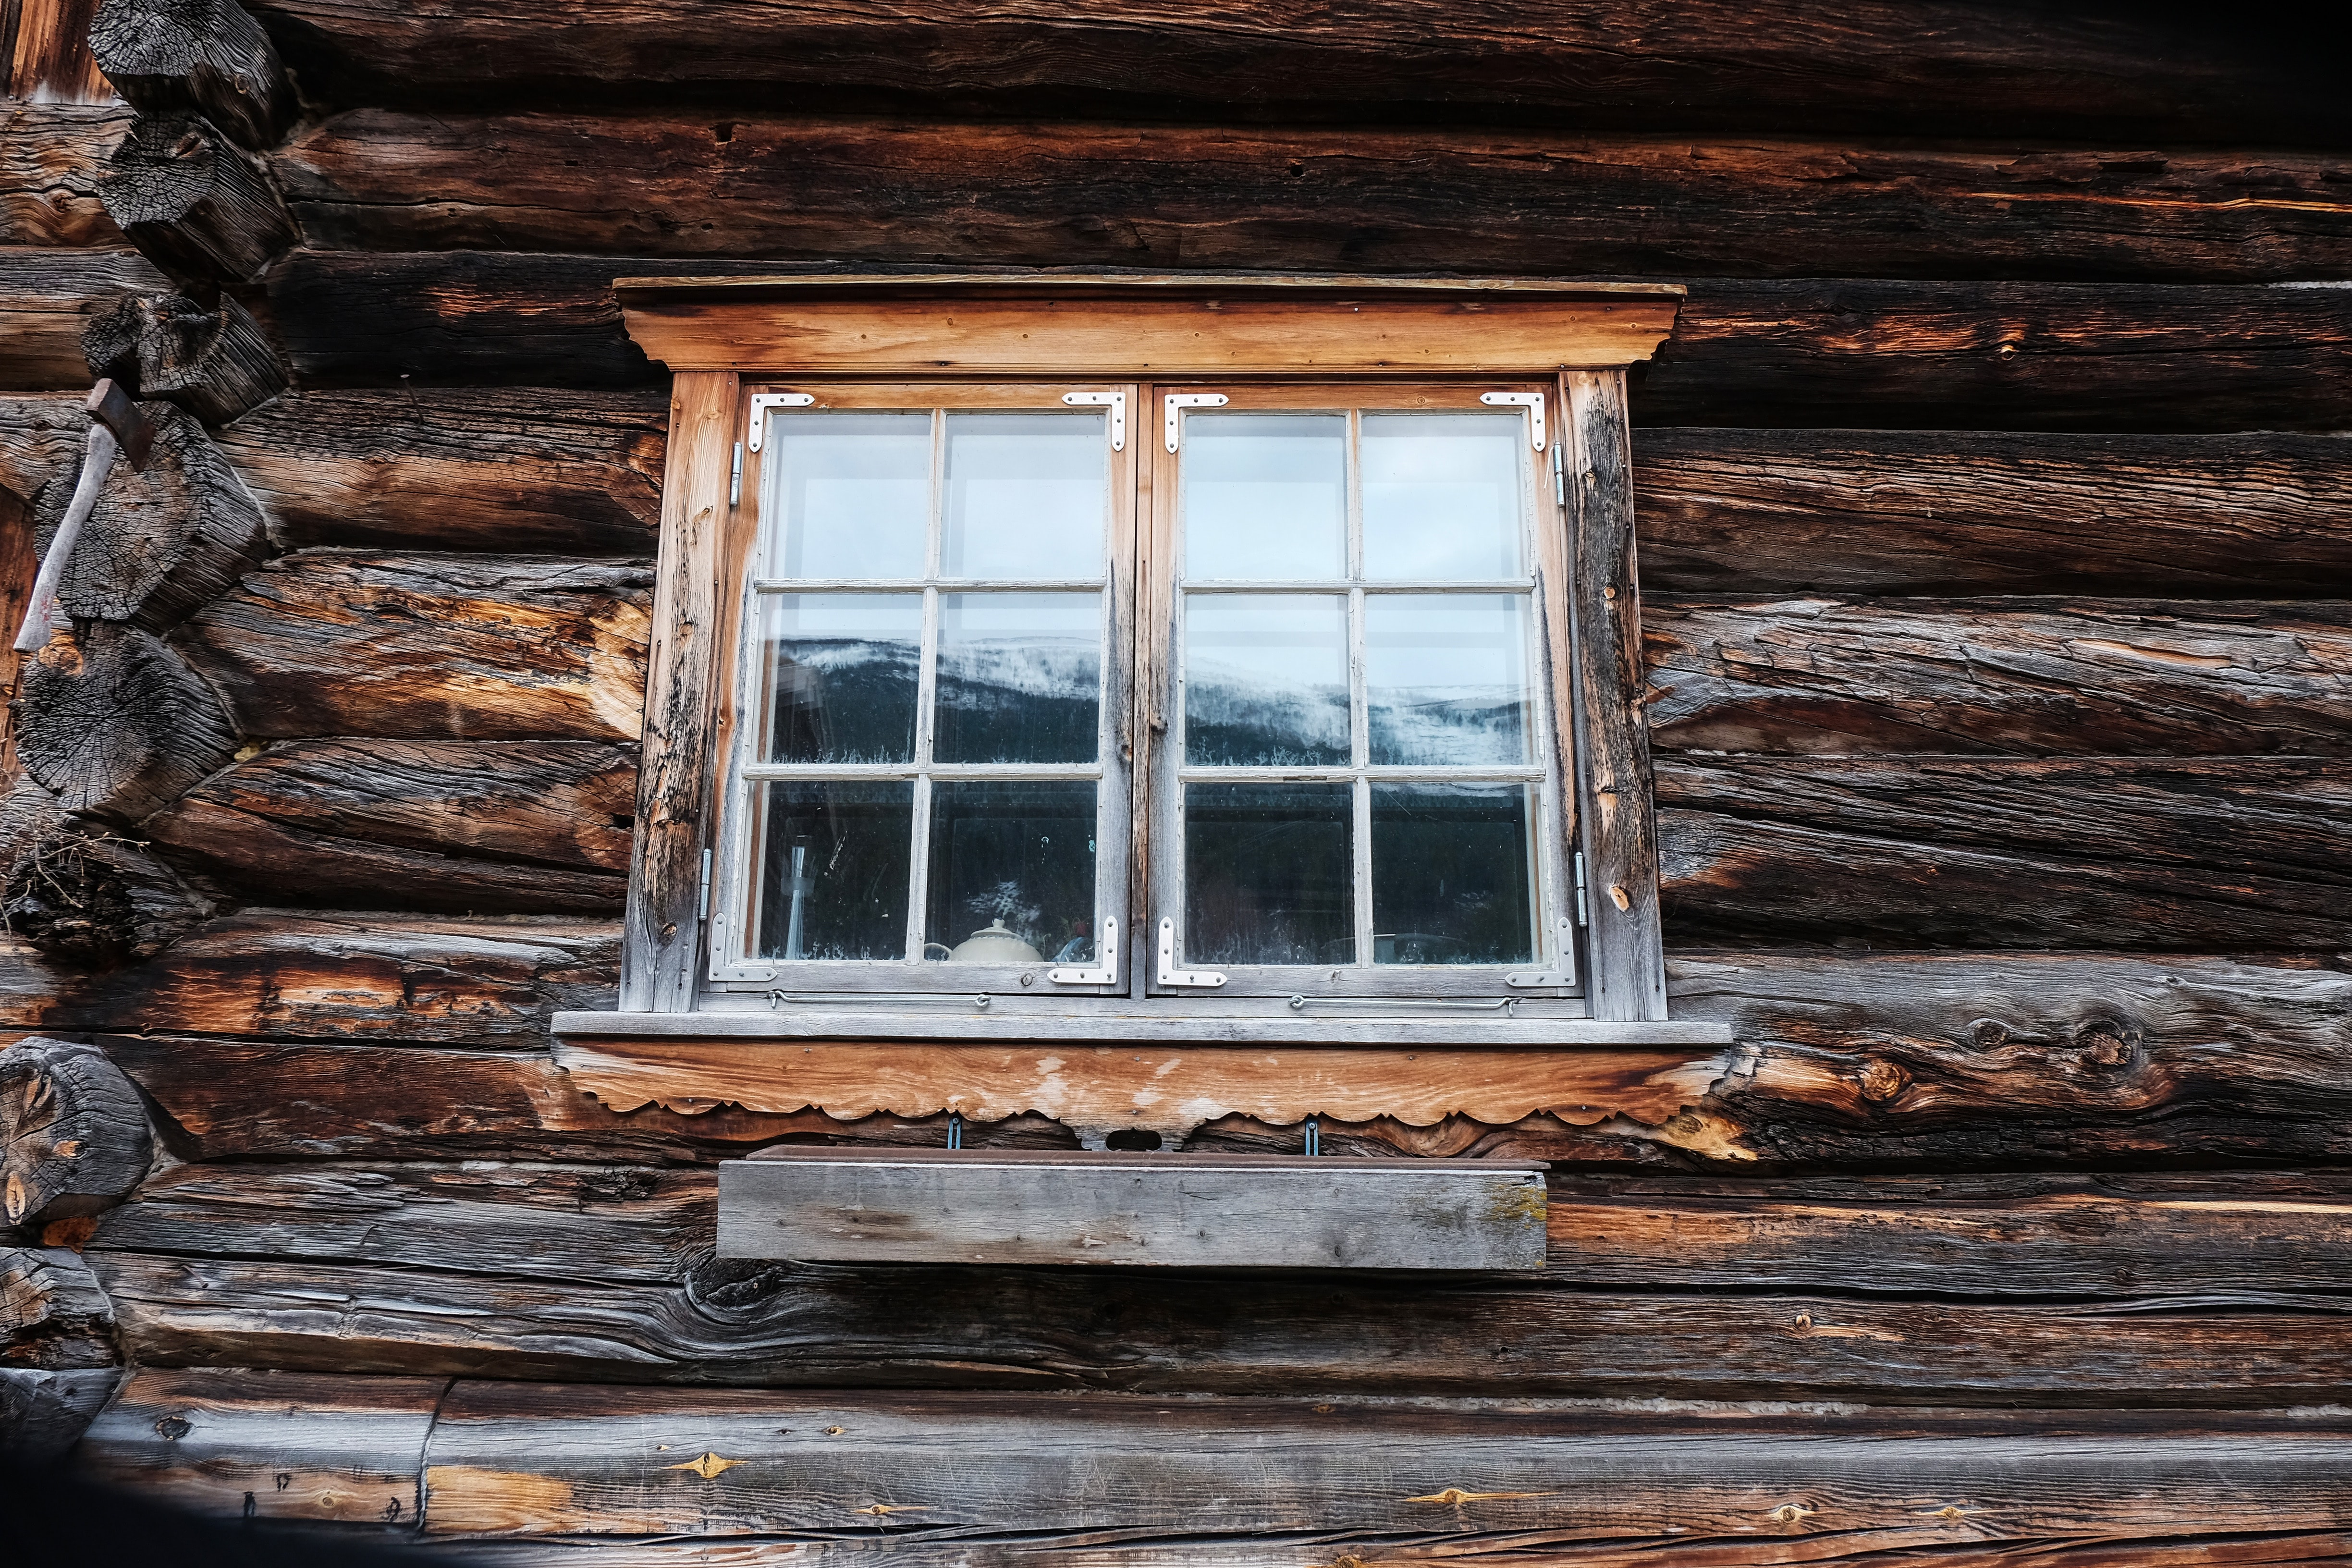 Window on the exposed timber of a log cabin with white capped mountains in the background